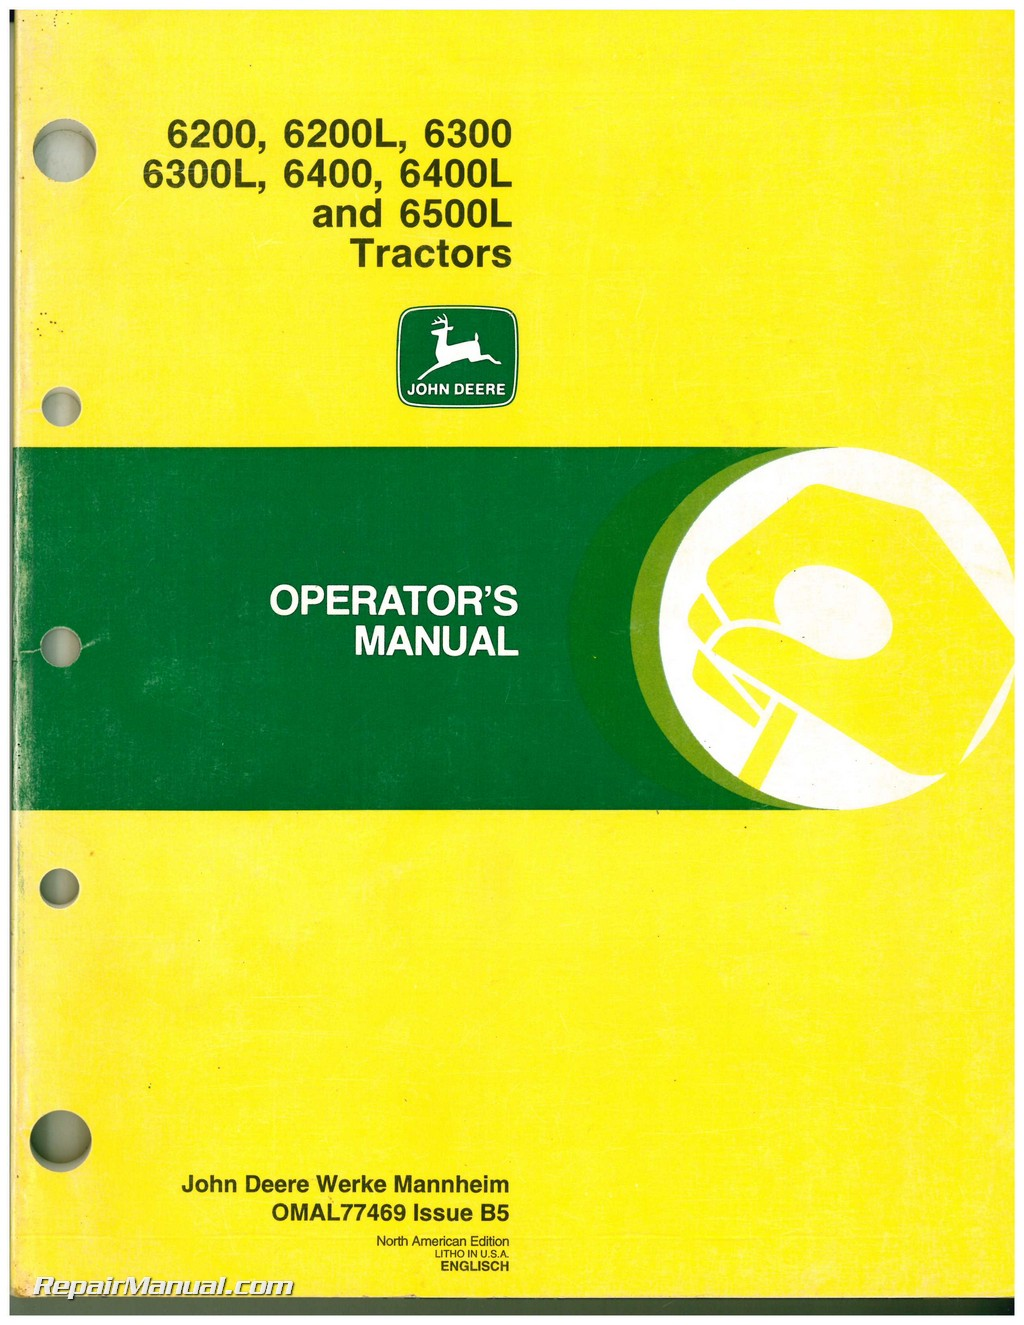 jd 6300 wiring diagram trusted wiring diagram john deere 310d wiring-diagram used john deere 6200, 6200l, 6300 6300l, 6400, 6400l and 6500l john deere 1050 wiring diagram jd 6300 wiring diagram